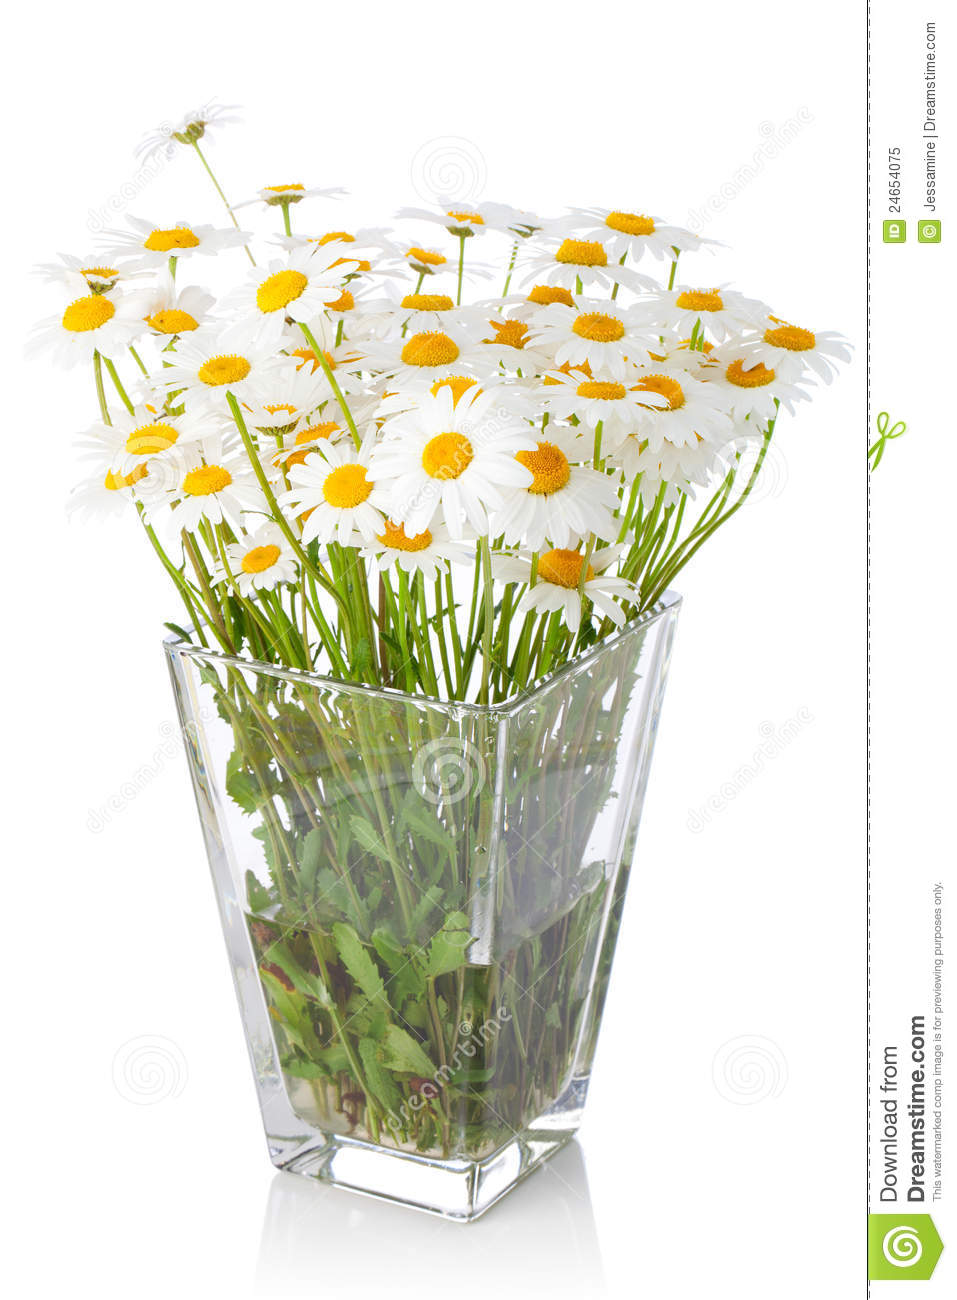 Beautiful Marguerite Flowers In Vase Royalty Free Stock ...